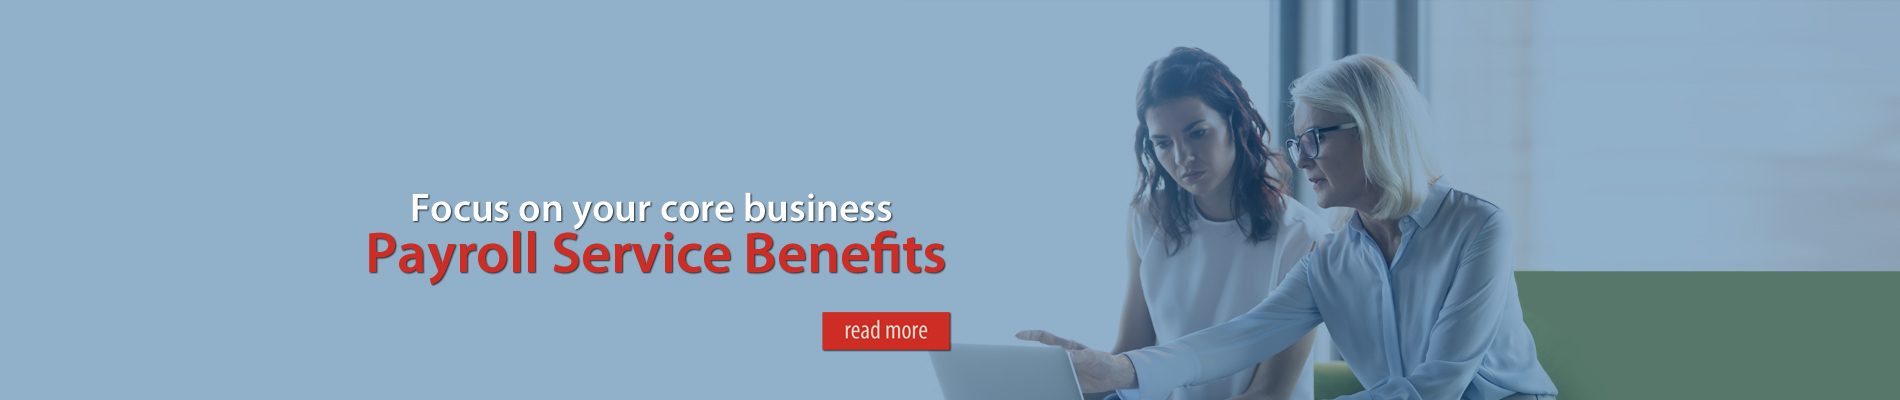 Focus on your core business with payroll service benefits.